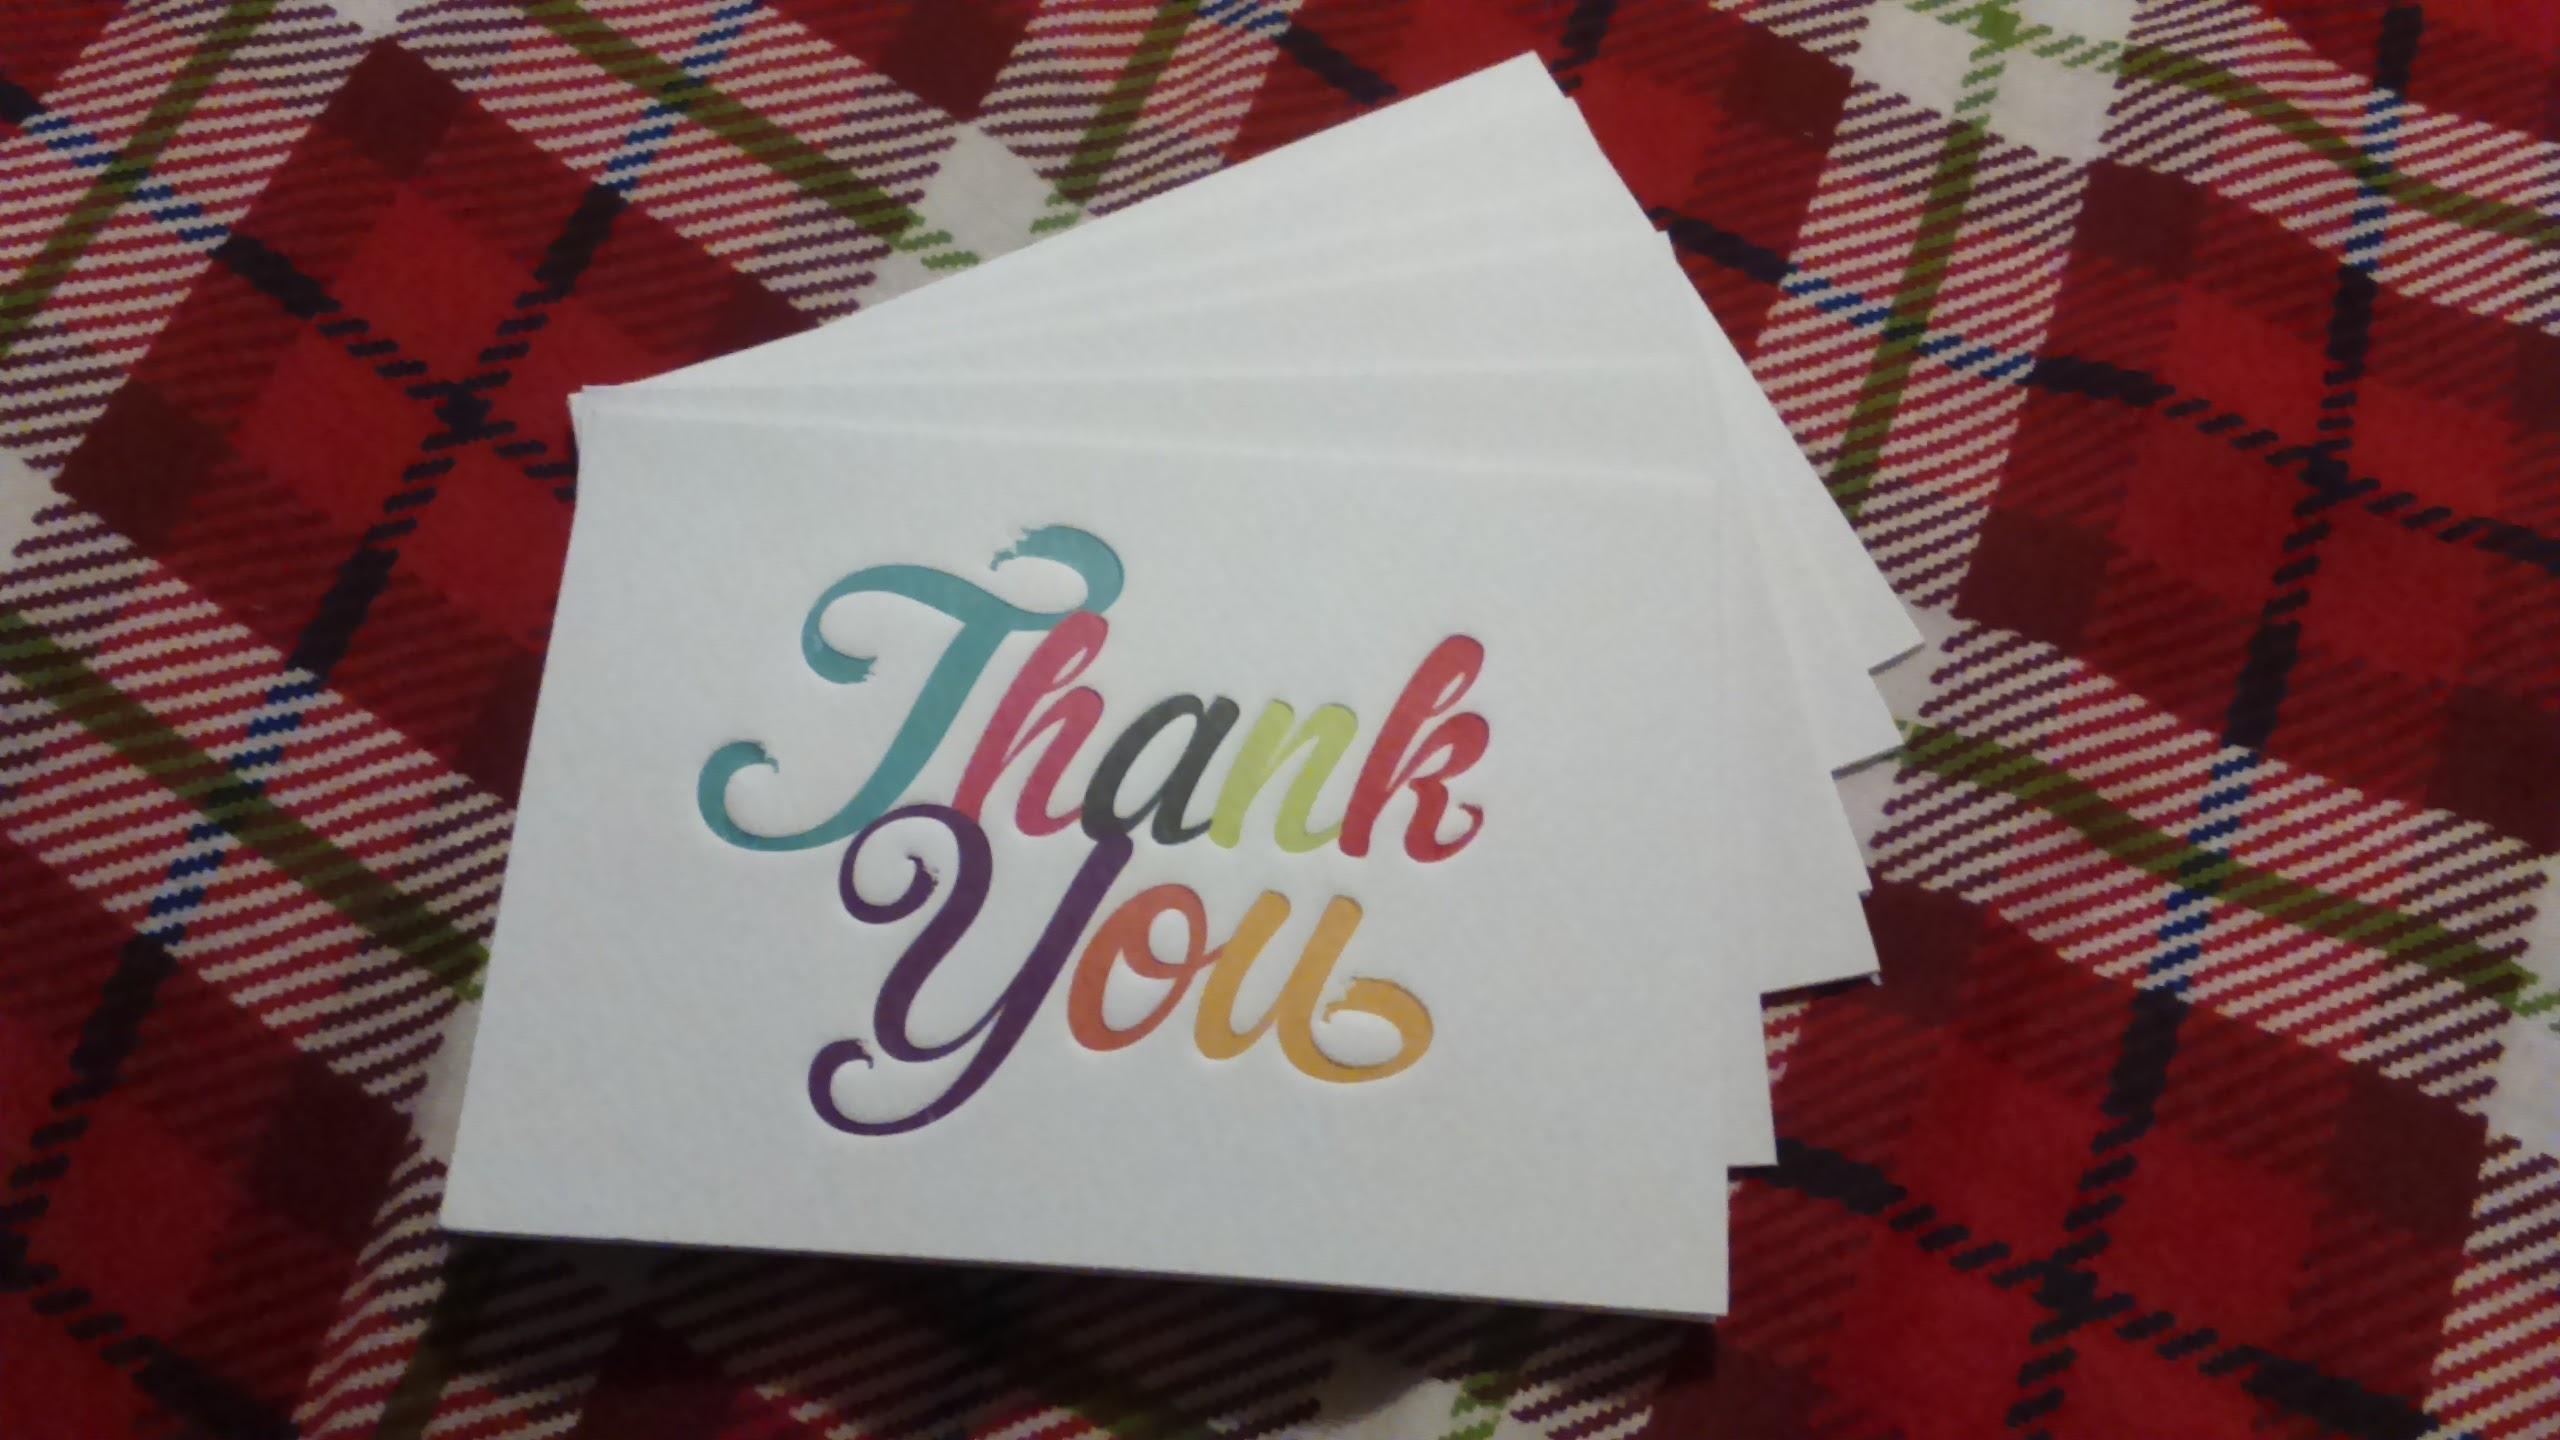 The lost art of saying thank you